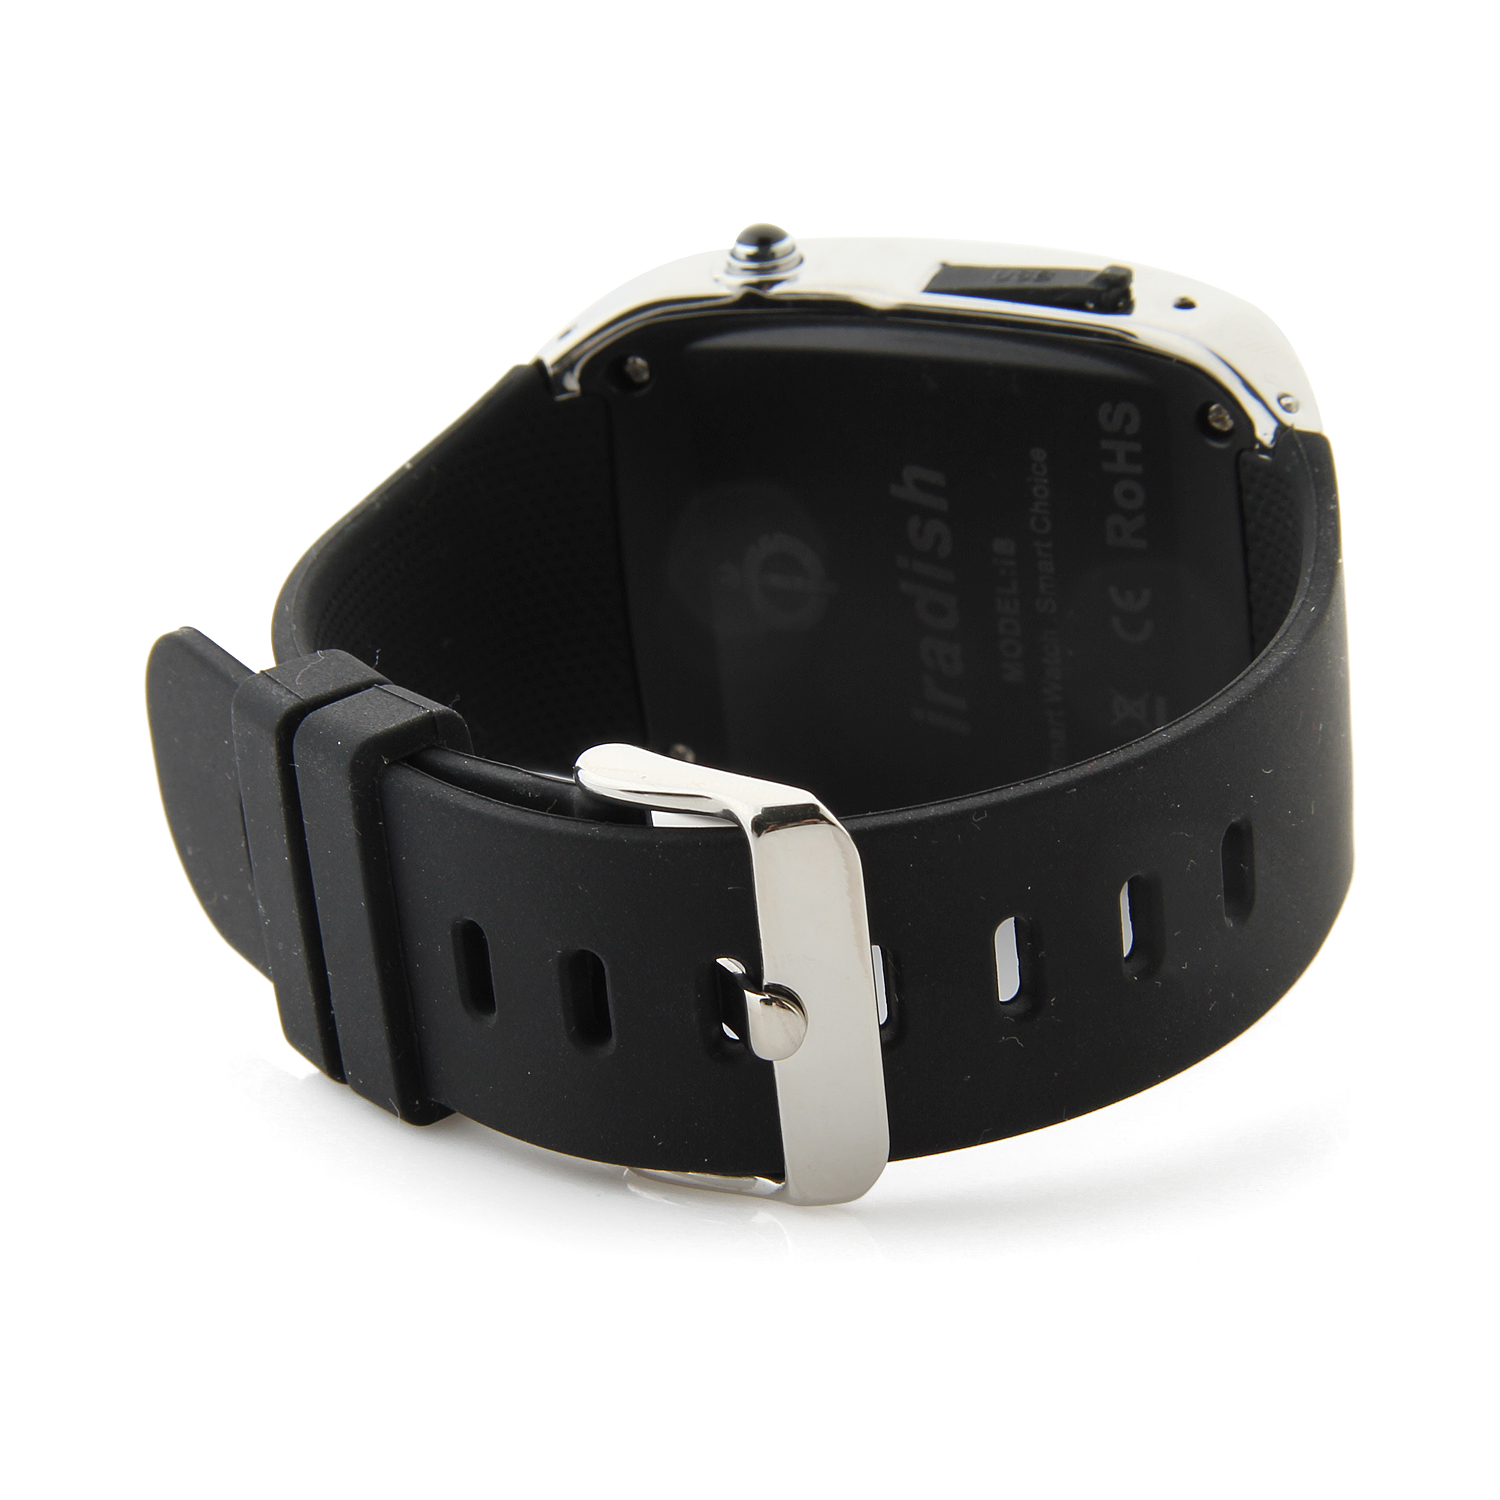 Iradish I8 Smart Bluetooth Watch 1.54 Inch for Android Devices & iPhone Black&Silver